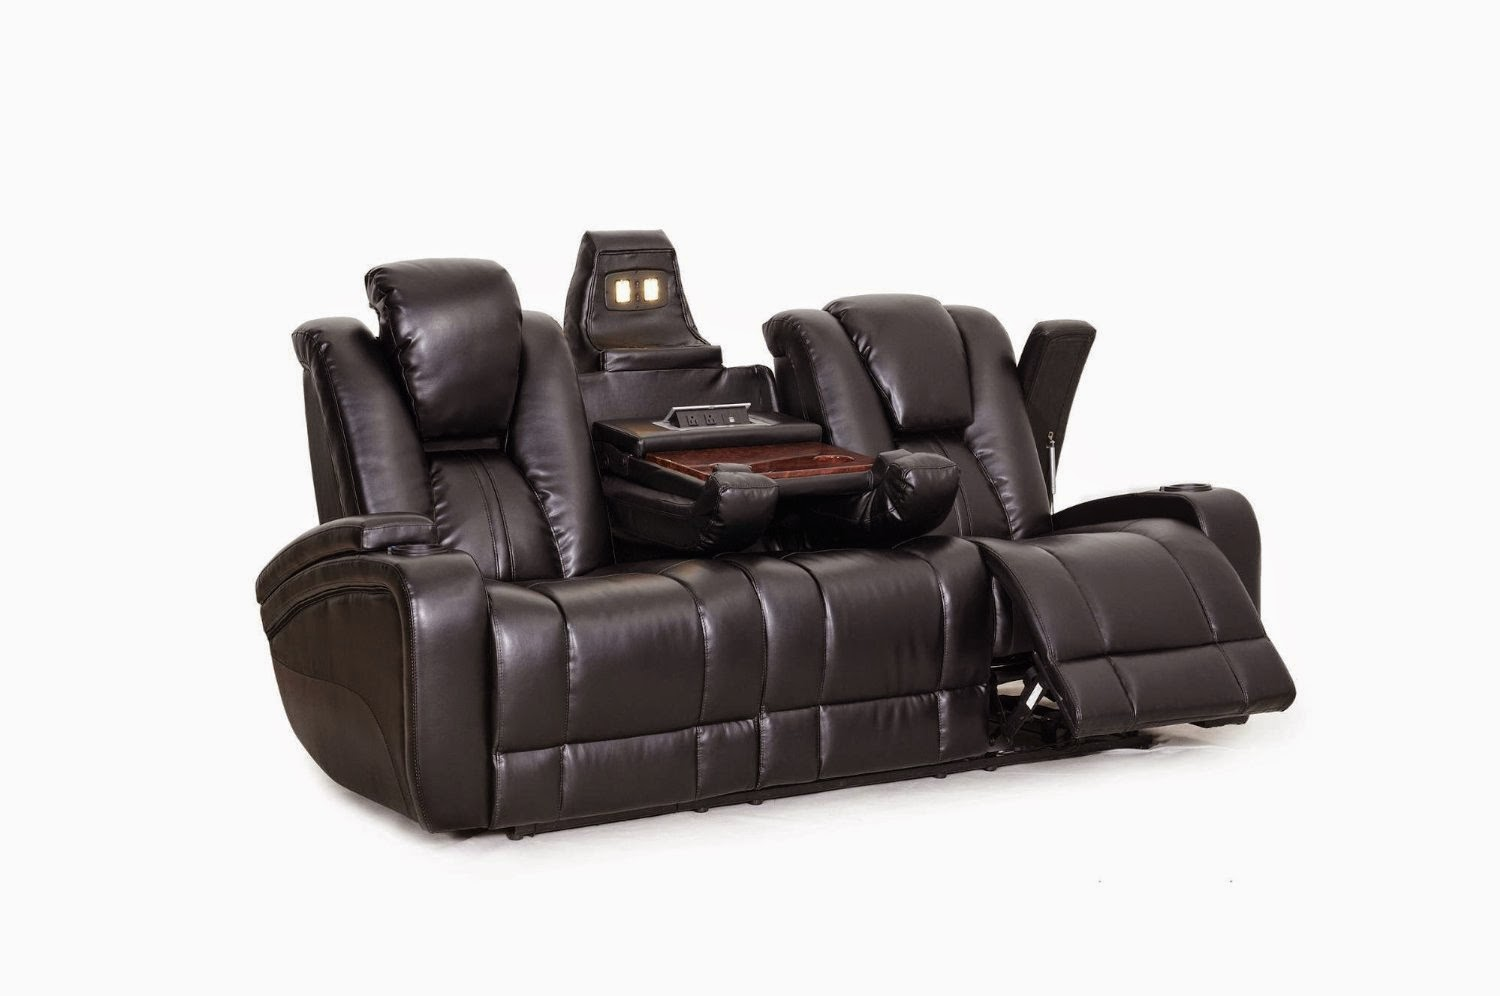 3 seat leather recliner sofa covers u shaped corner bed reclining loveseat and chair sets seth genuine